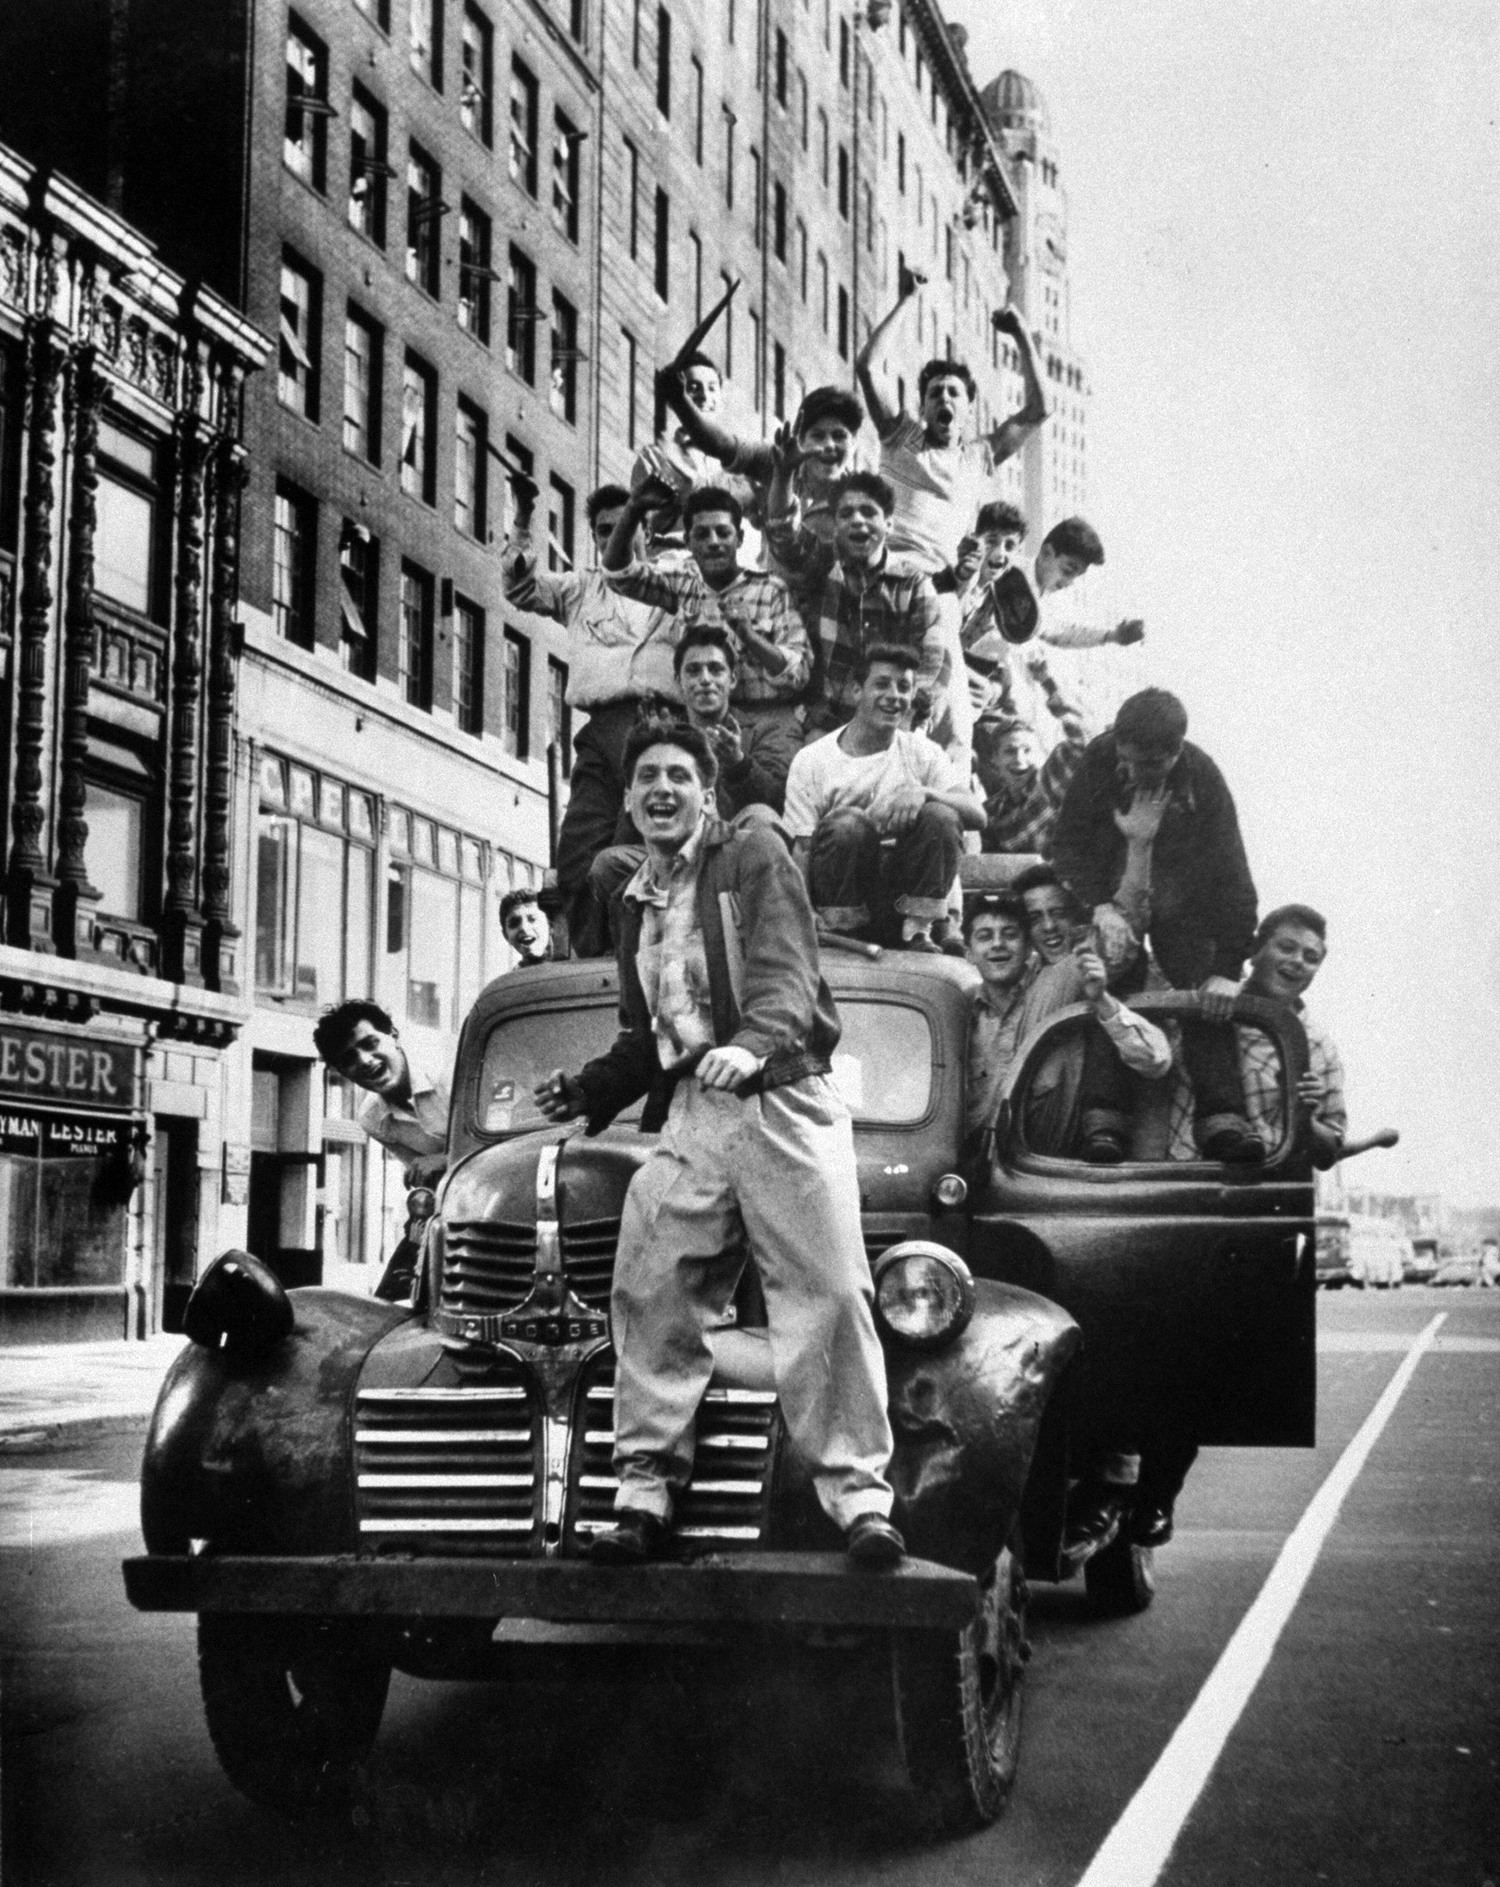 Fans celebrating Dodgers' World Series victory, 1955, Brooklyn.